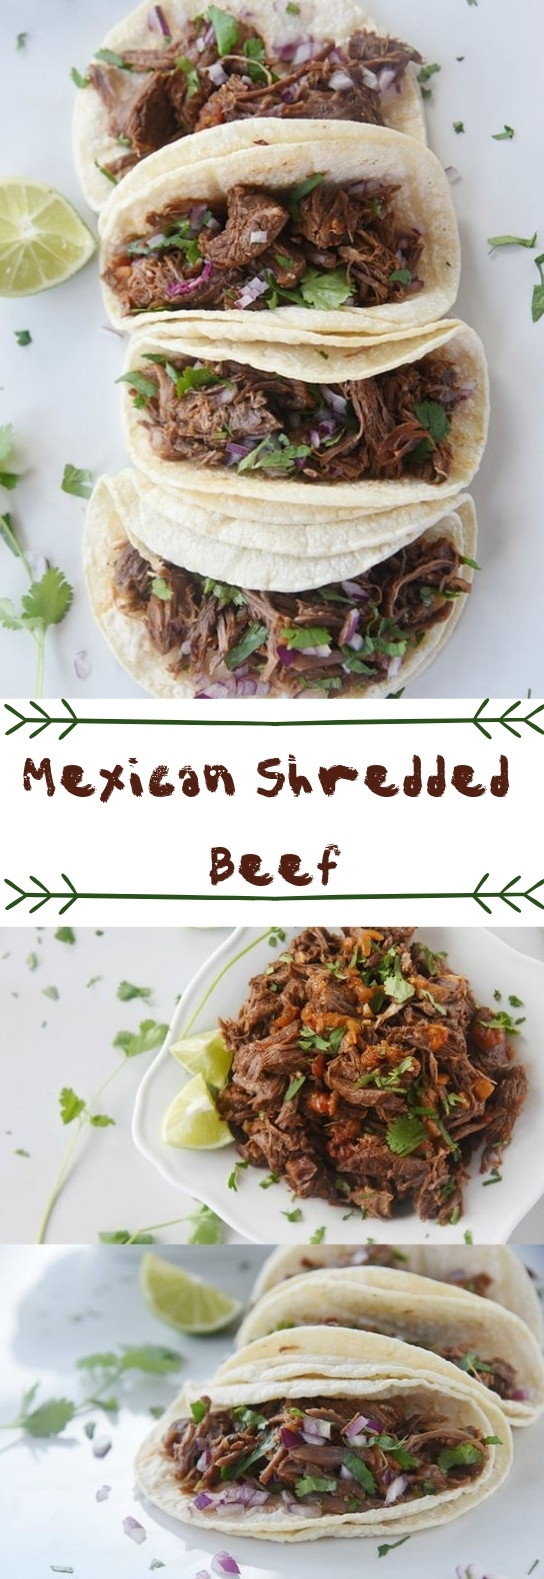 Mexican Shredded Beef {Instant Pot or Slow Cooker} #meatrecipe #slowcooker